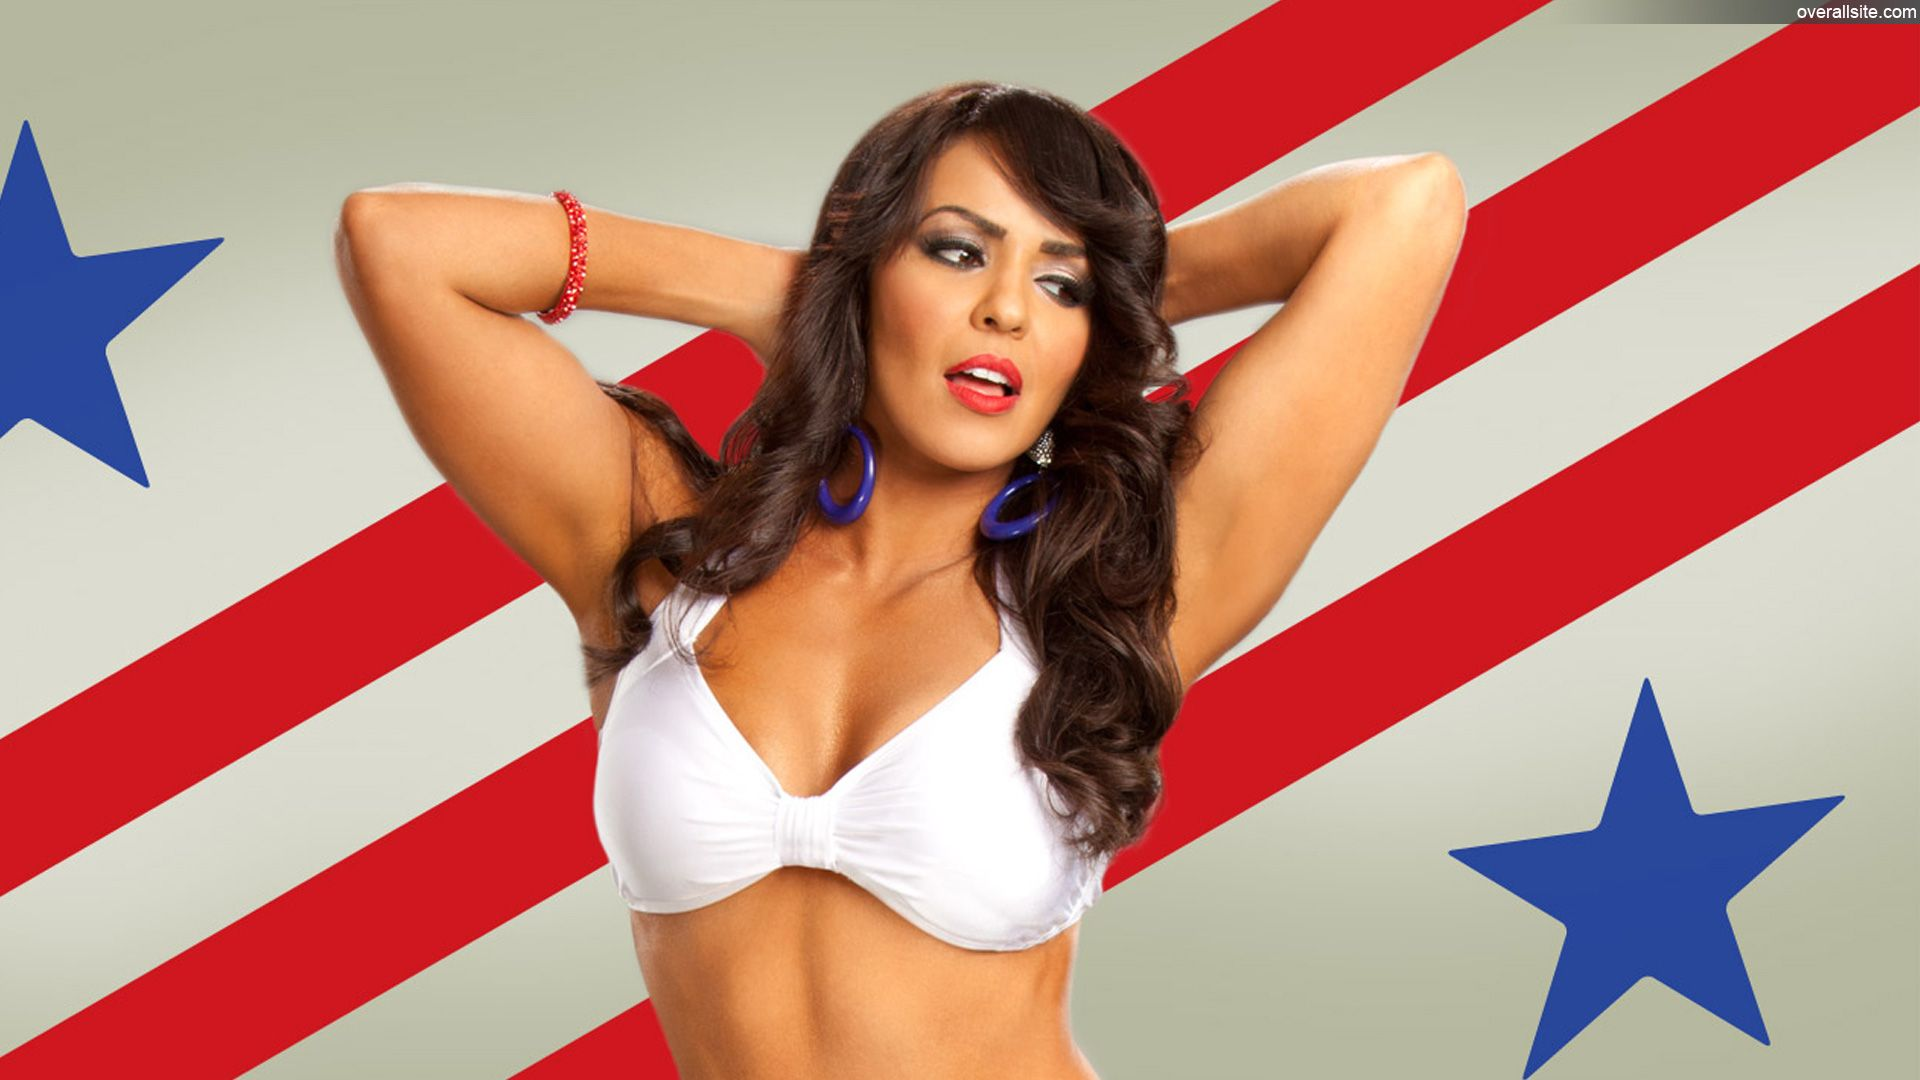 Wwe Has Released A New Diva Madness Photoshoot Featuring Our Lovely British Muffin Layla El Take A Look At How Flawless She Looked On This Photoshoot